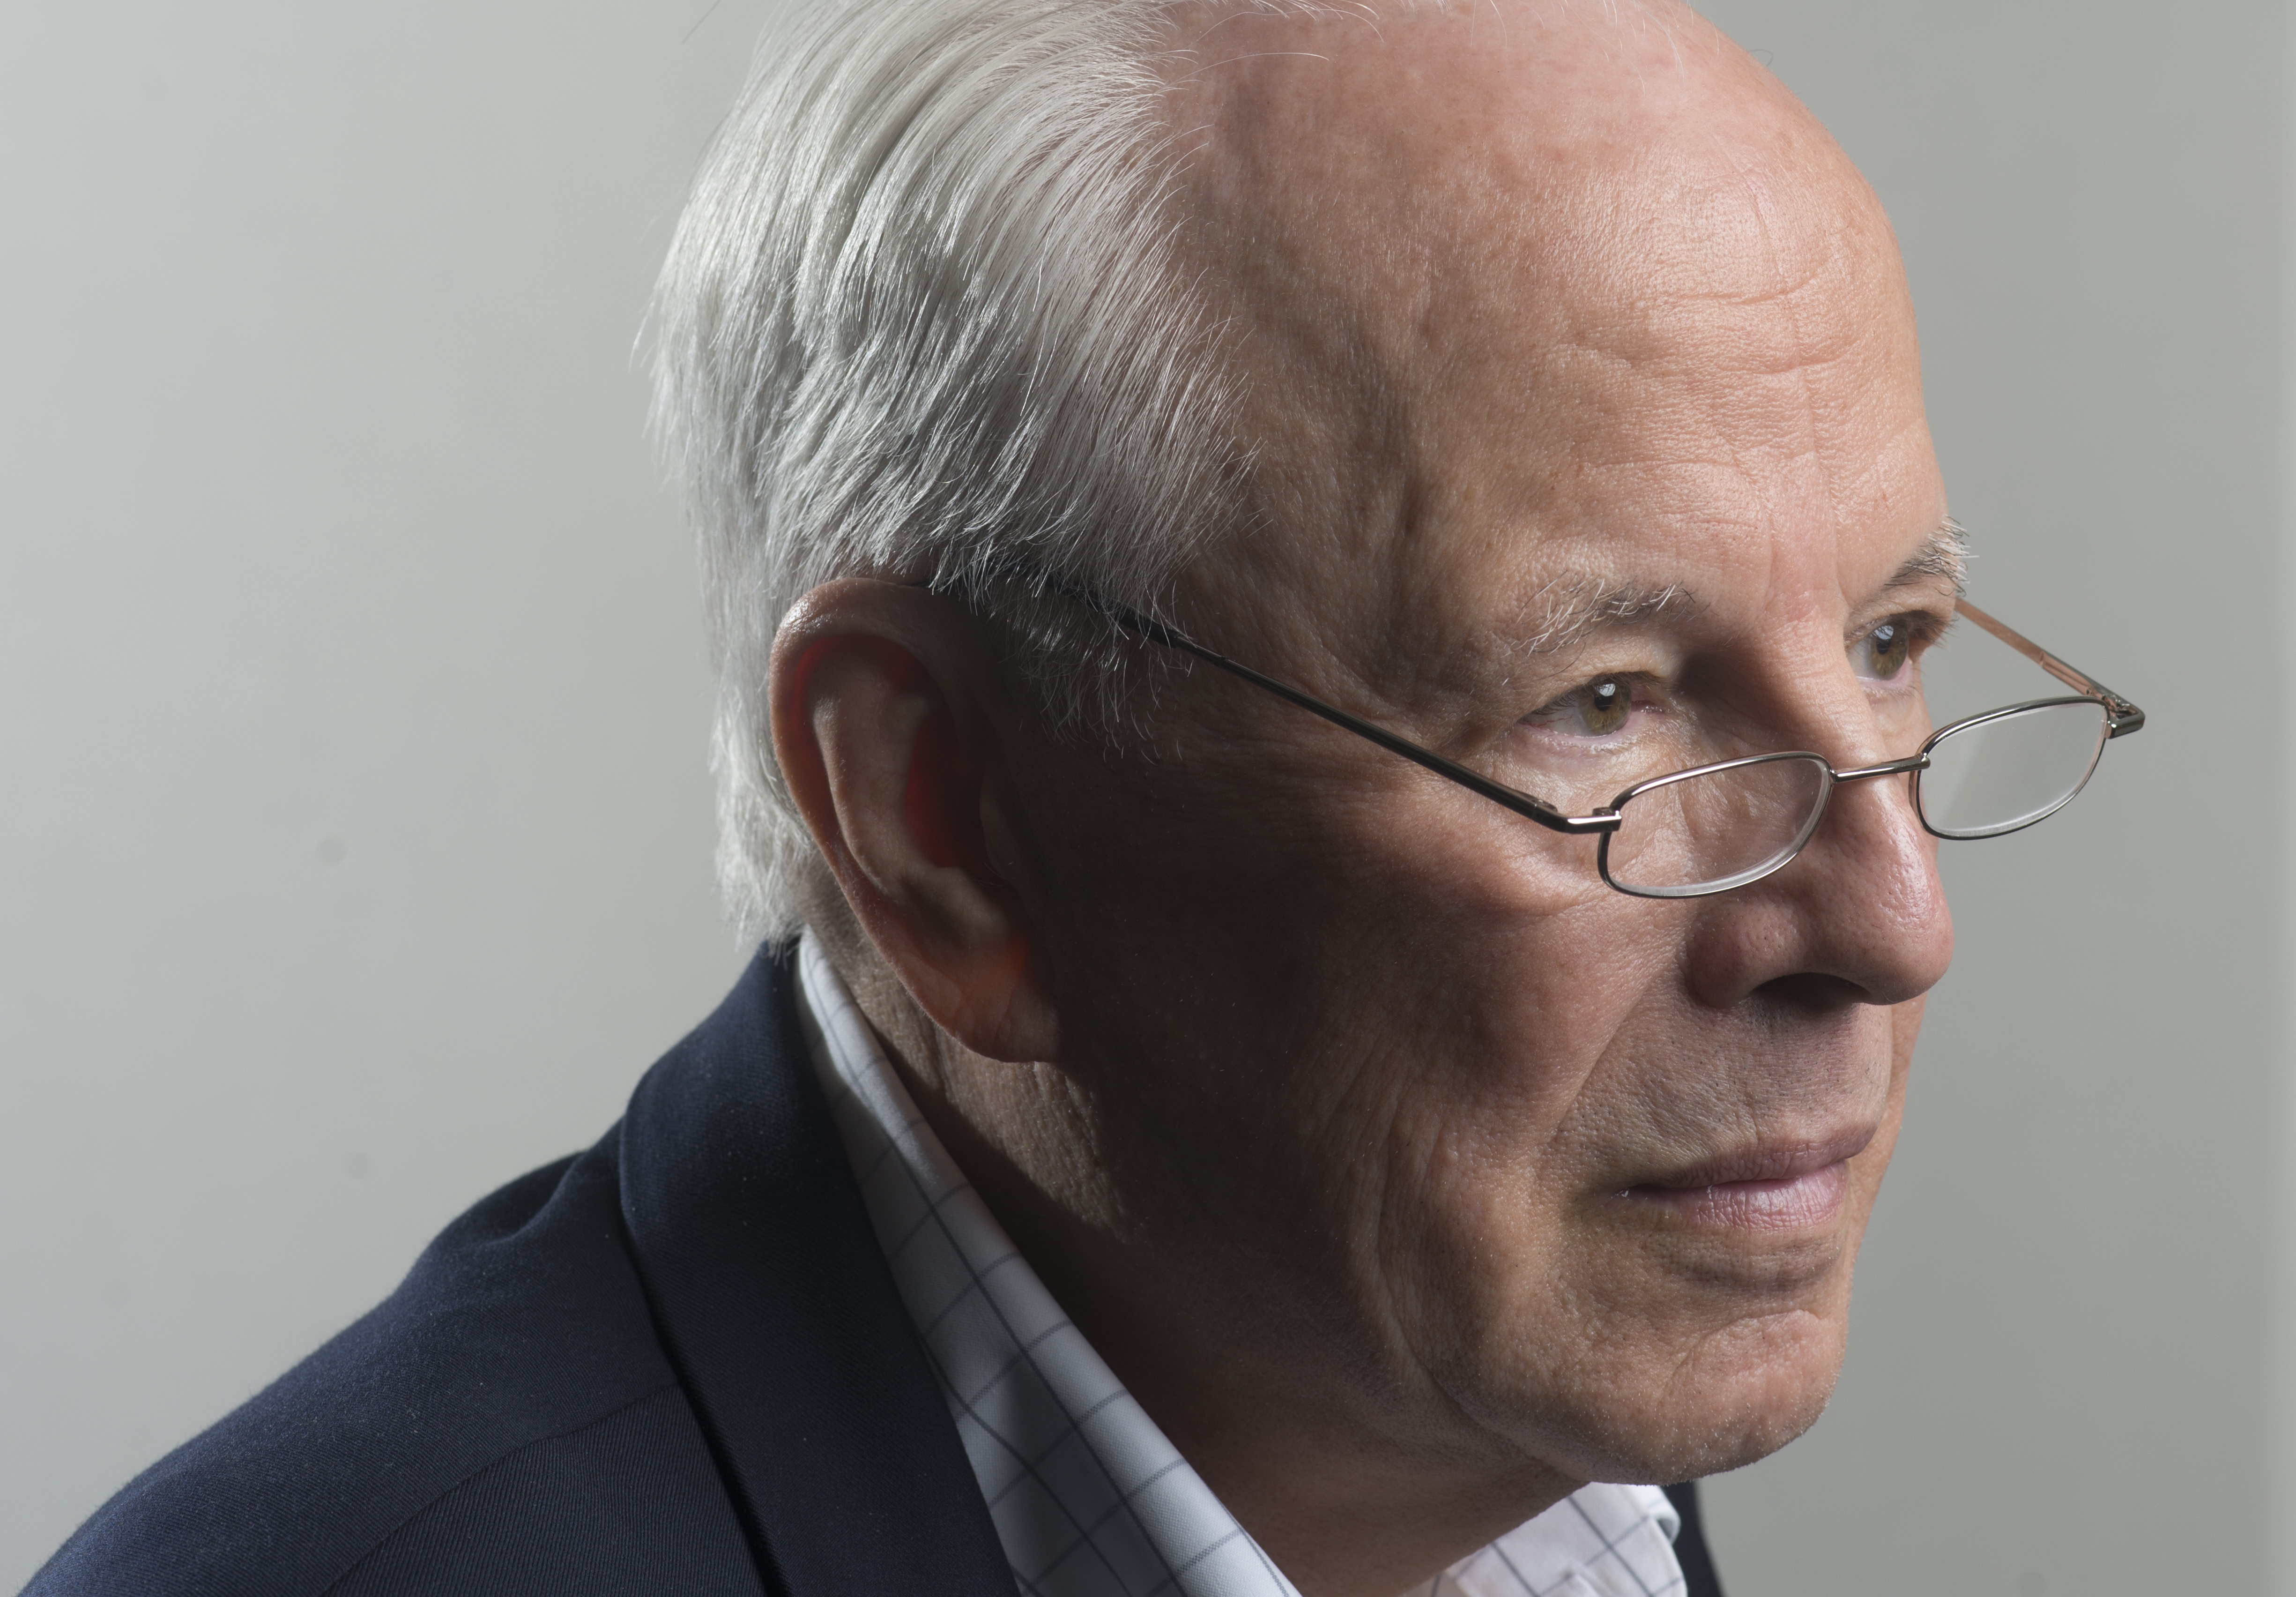 WASHINGTON, DC- JULY 24:Former White House counsel John Dean has written yet another book about Nixon. This one is based on new transcripts and promises new revelations. Just in time for the 40th anniversary of Nixon's resignation, John Dean is photographed in Washington, D.C. on July 24, 2014.(Photo by Marvin Joseph/The Washington Post via Getty Images)